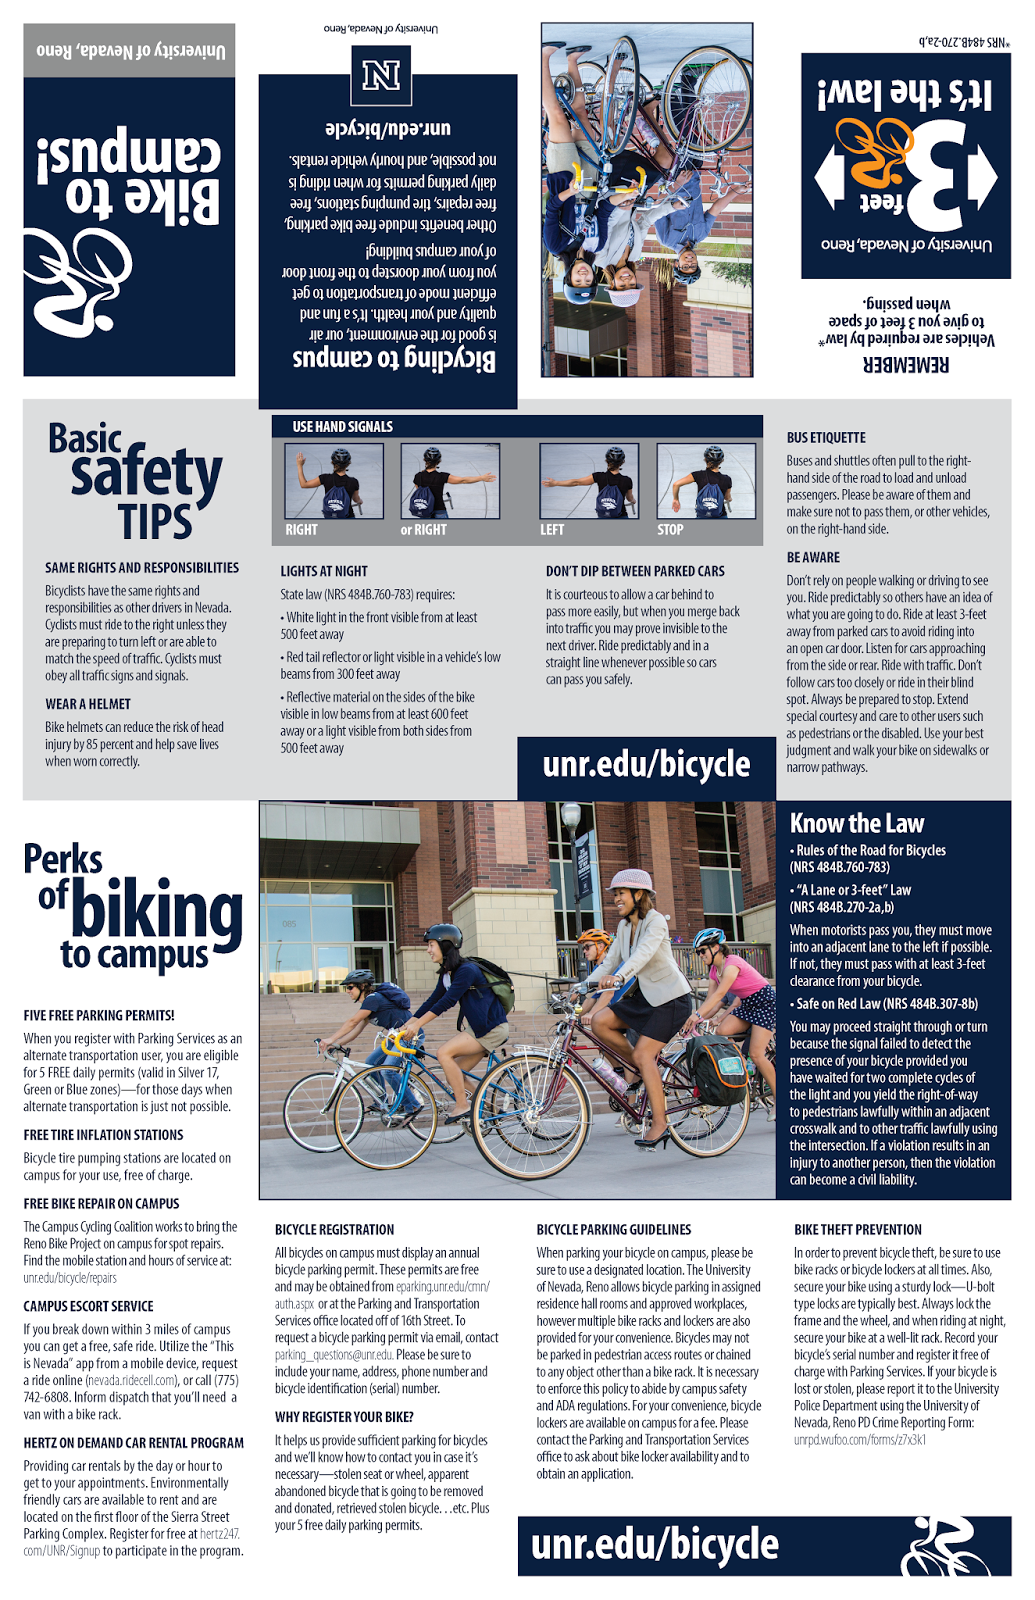 Bicycling to Campus Brochure Page 1